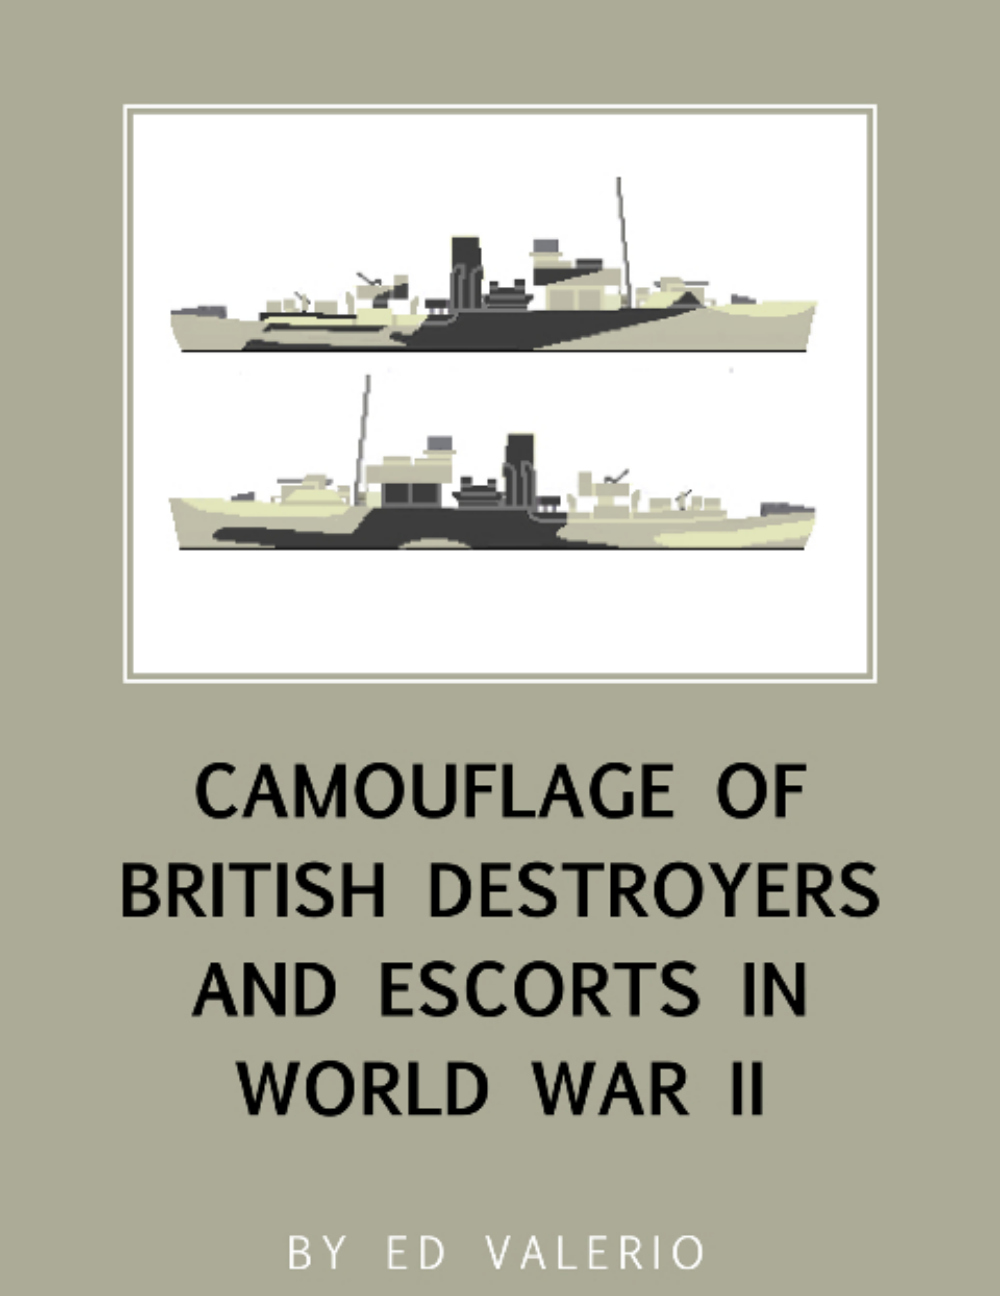 Camouflage of British Destroyers and Escorts in World War II